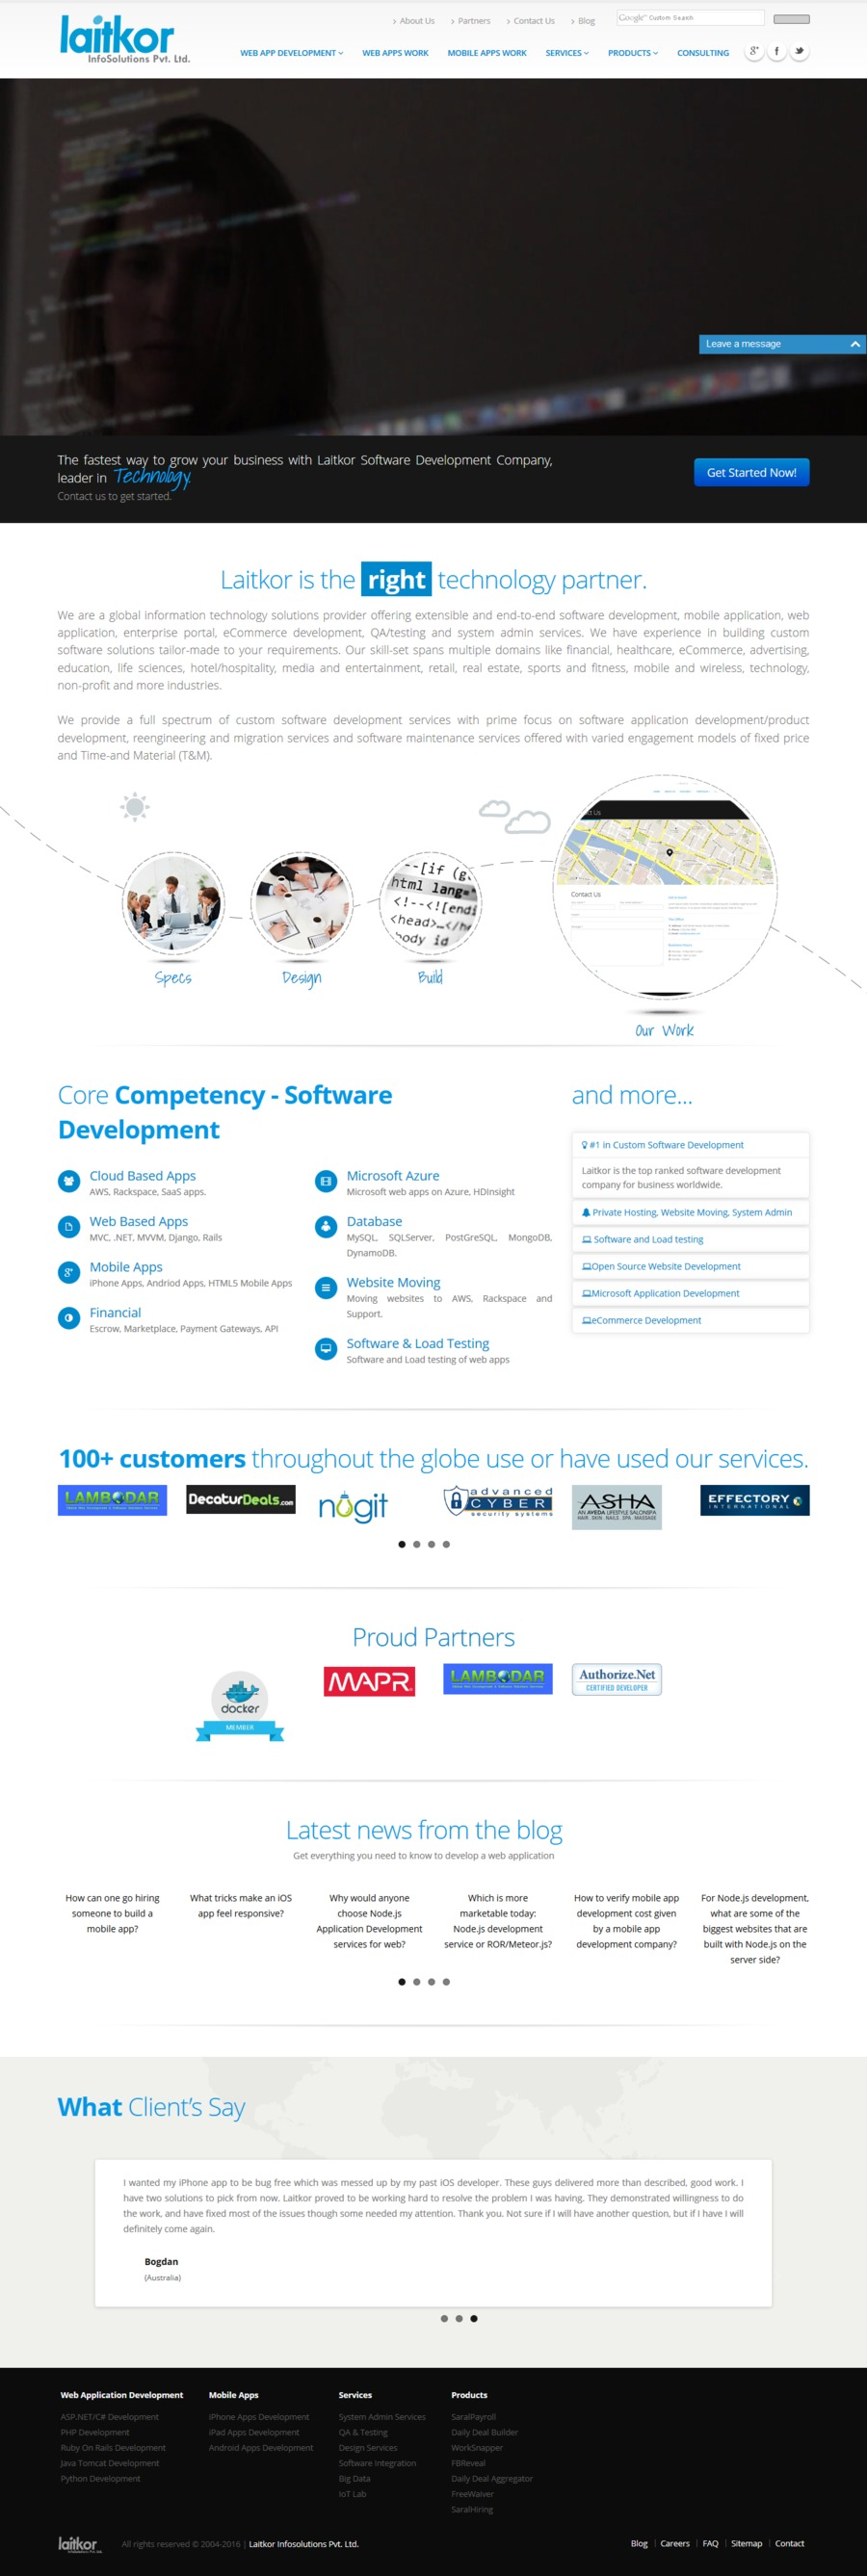 A great web design by Laitkor InfoSolutions Pvt. Ltd., Lucknow, India: